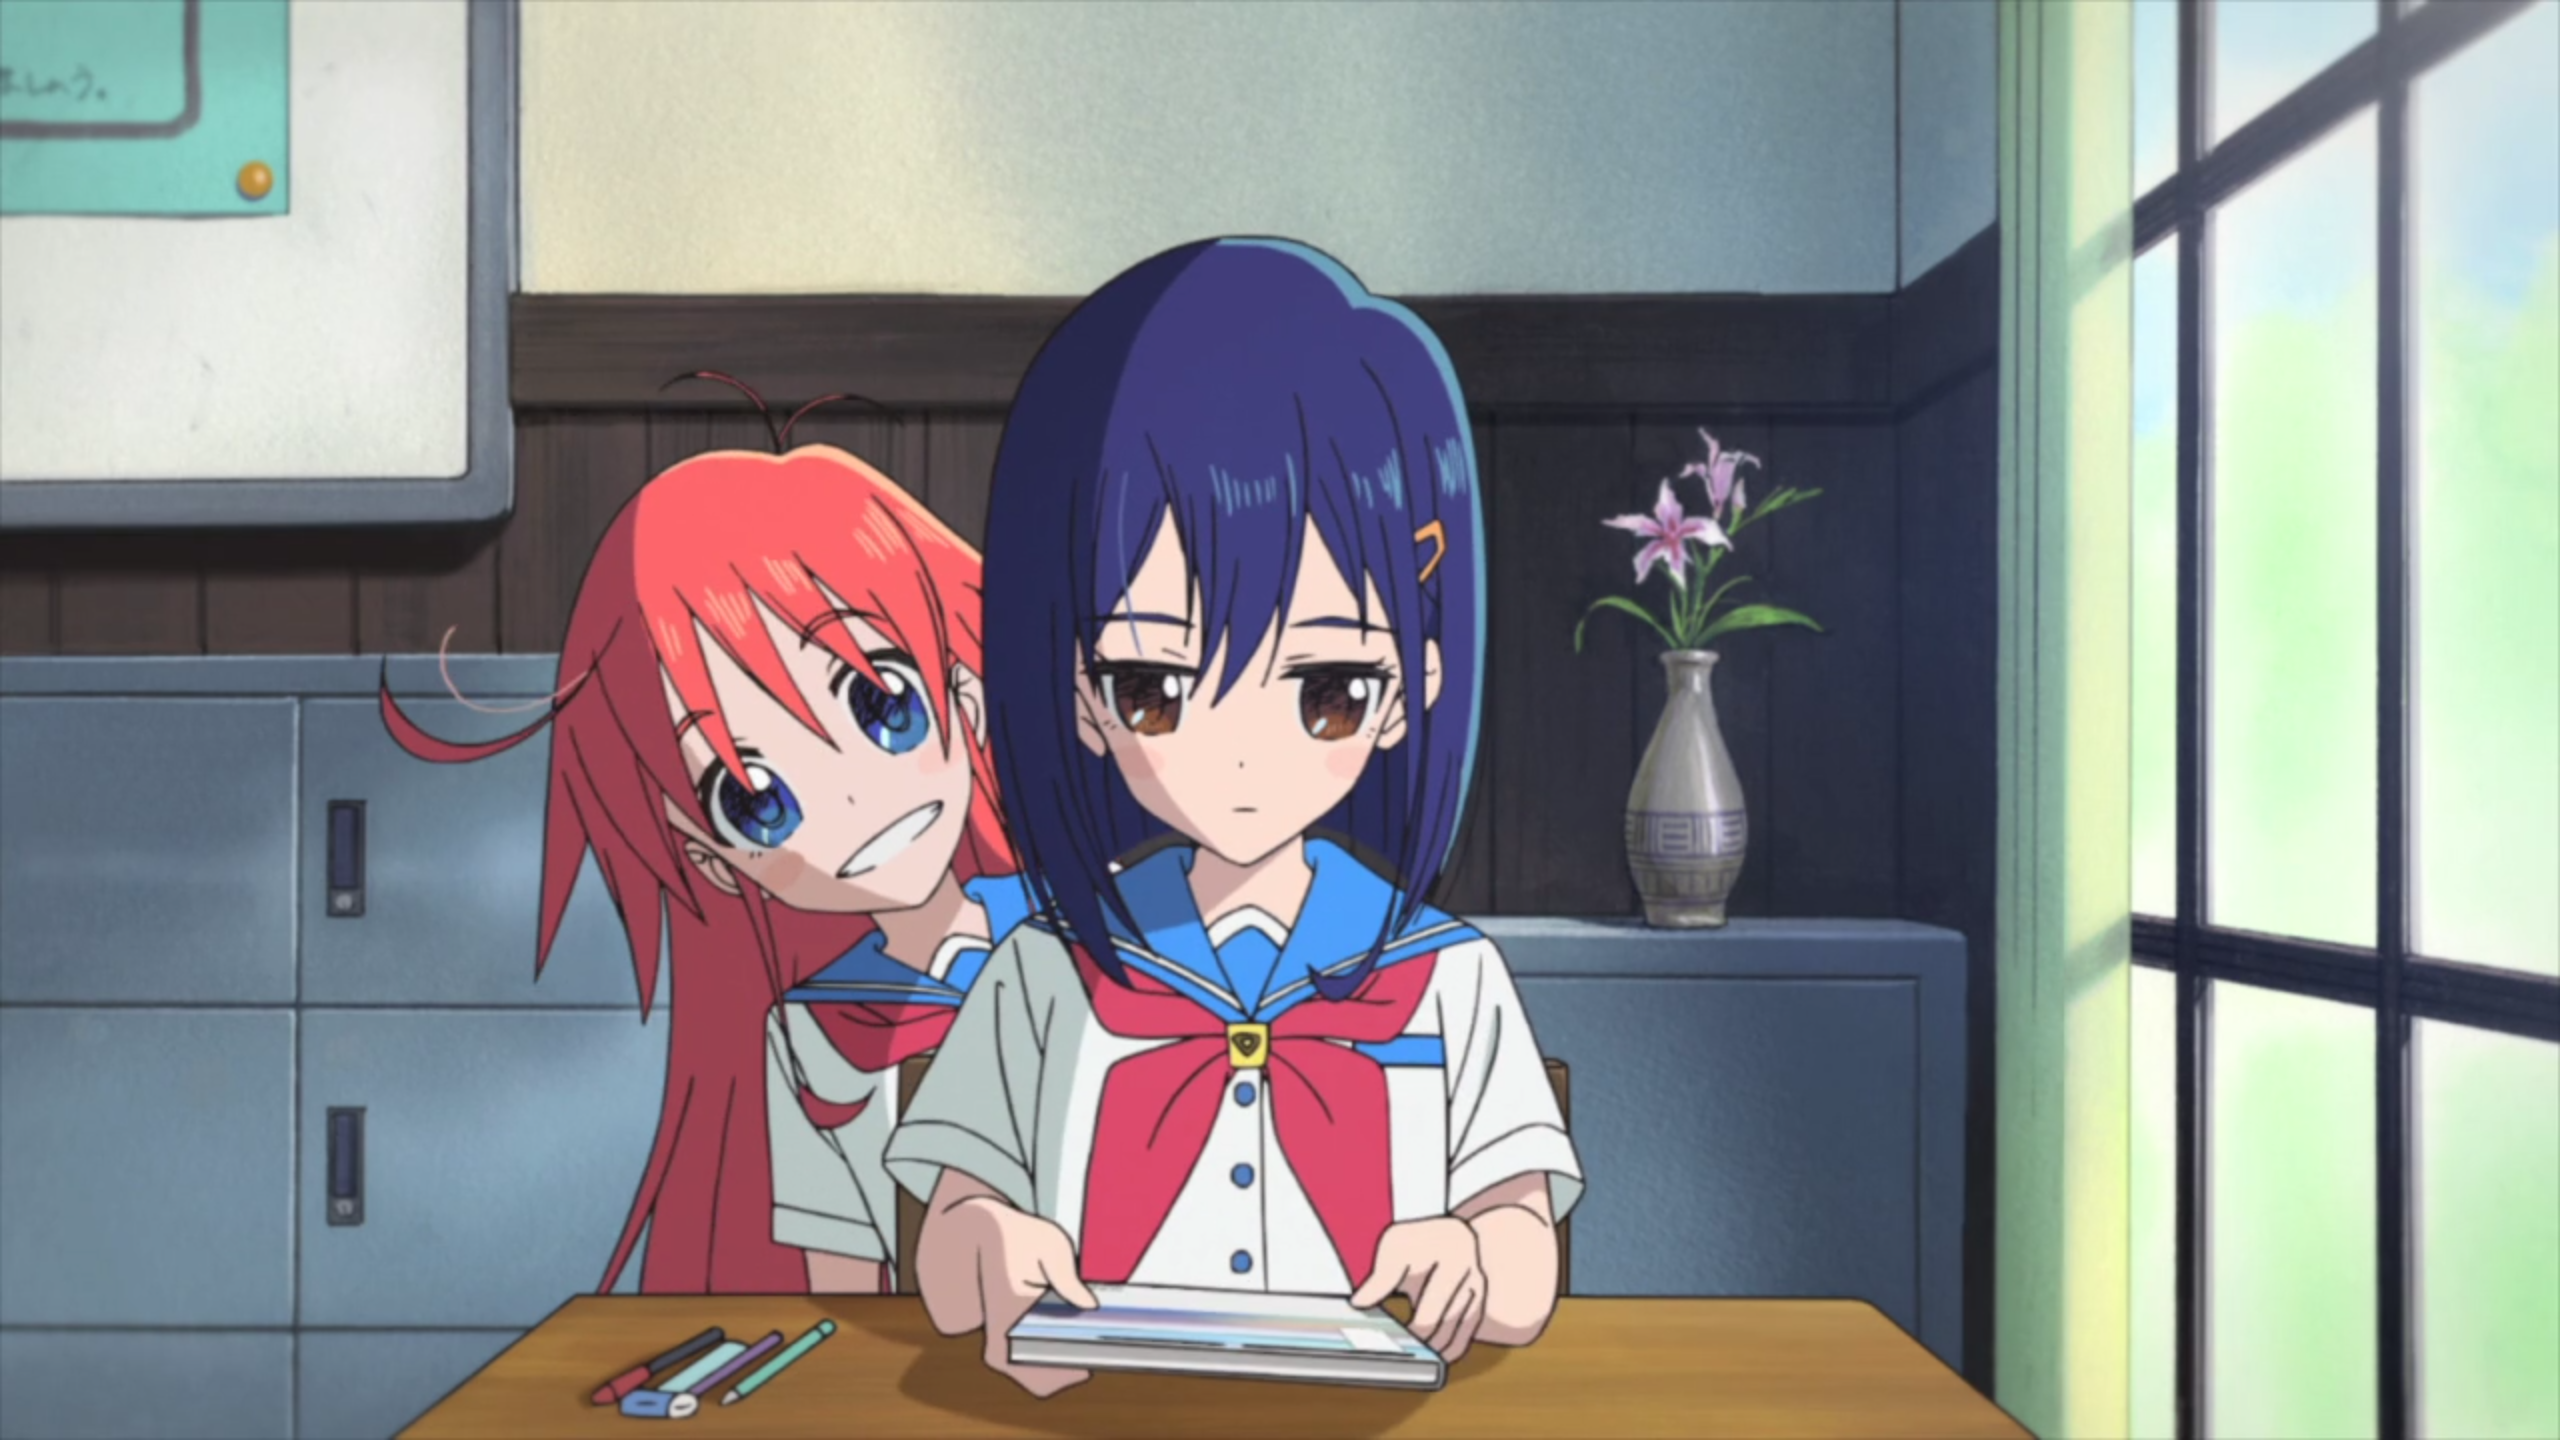 Cocona, a serious girl with blue hair and brown eyes sits at her school desk looking down at her book while Papika, a girl with red hair and blue eyes, smiles brightly from behind her.